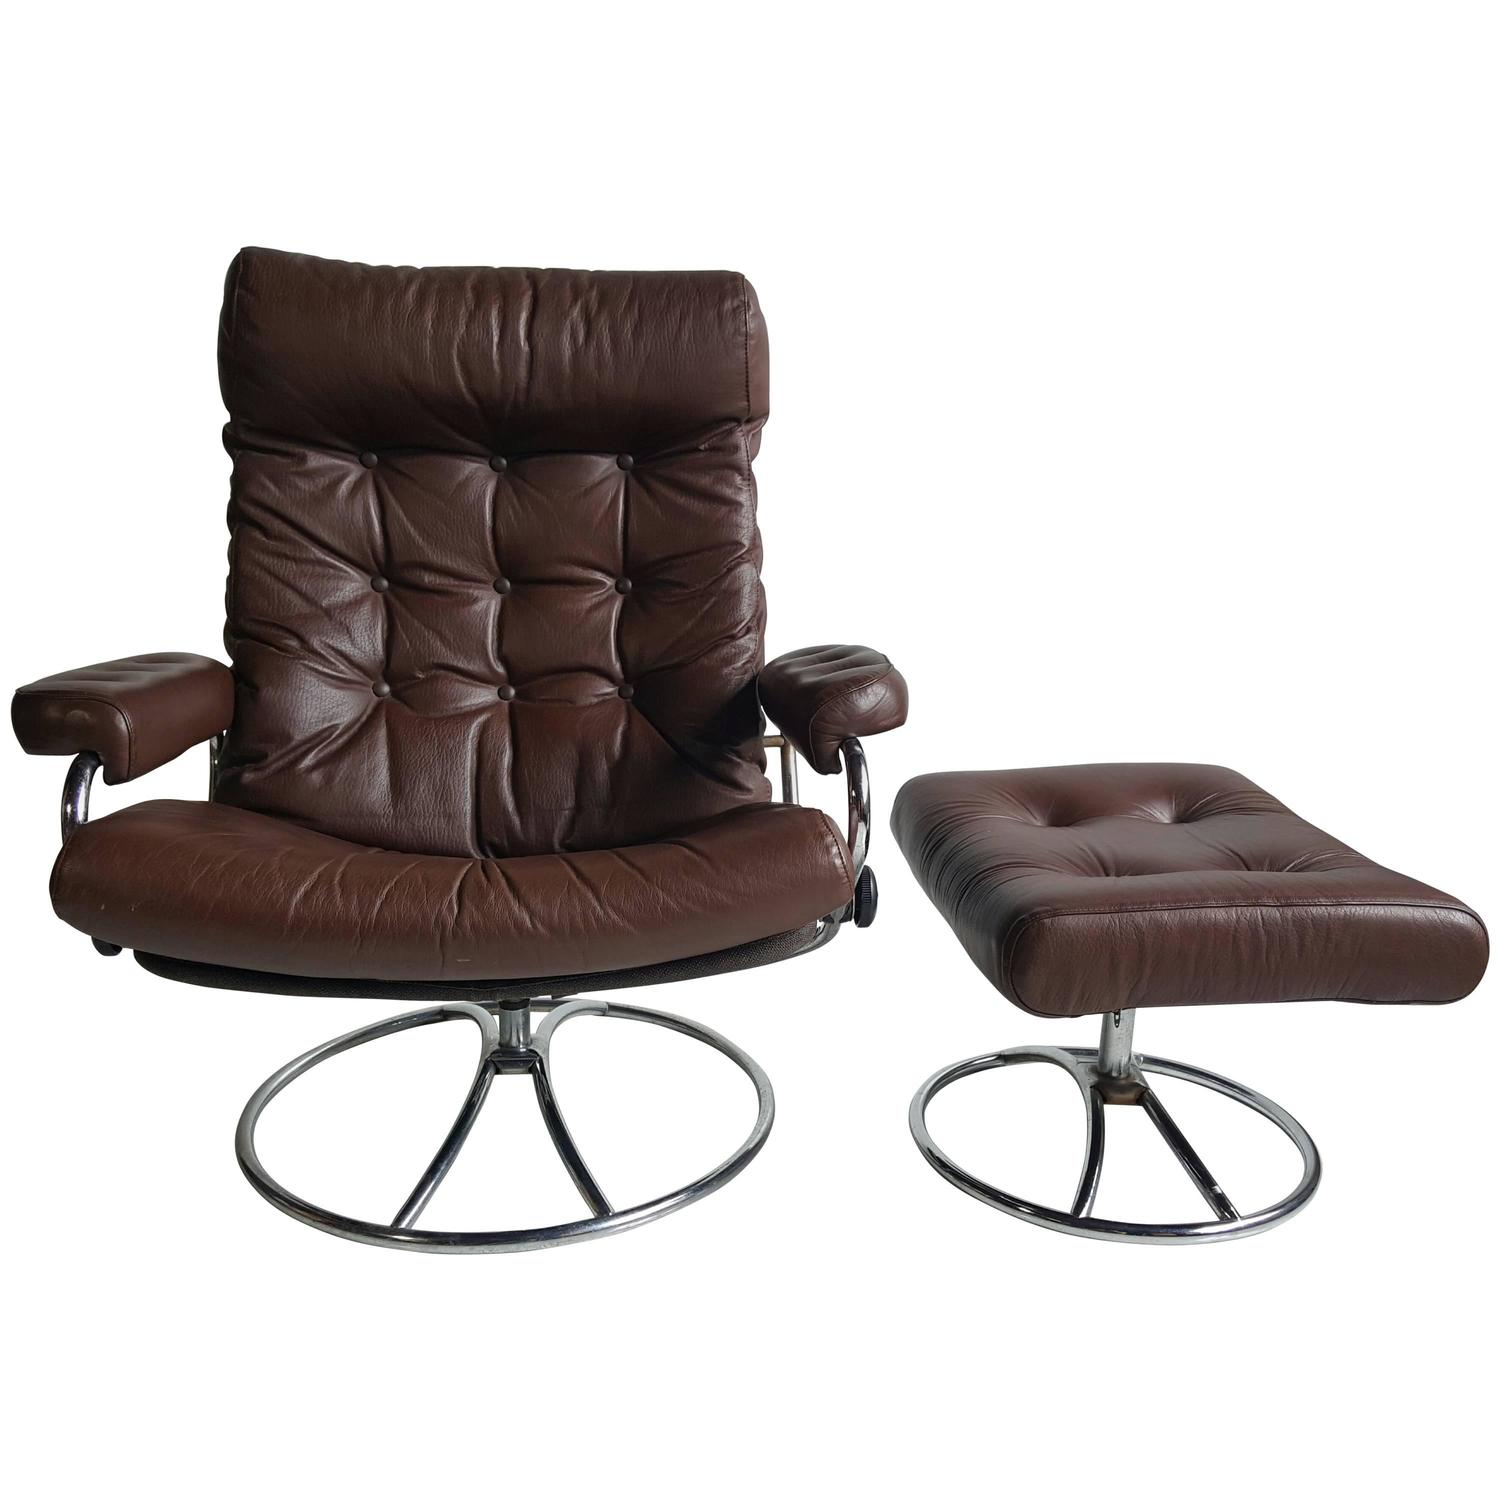 Ekornes Stressless Brown Leather Ekornes Stressless Lounge With Ottoman 1960